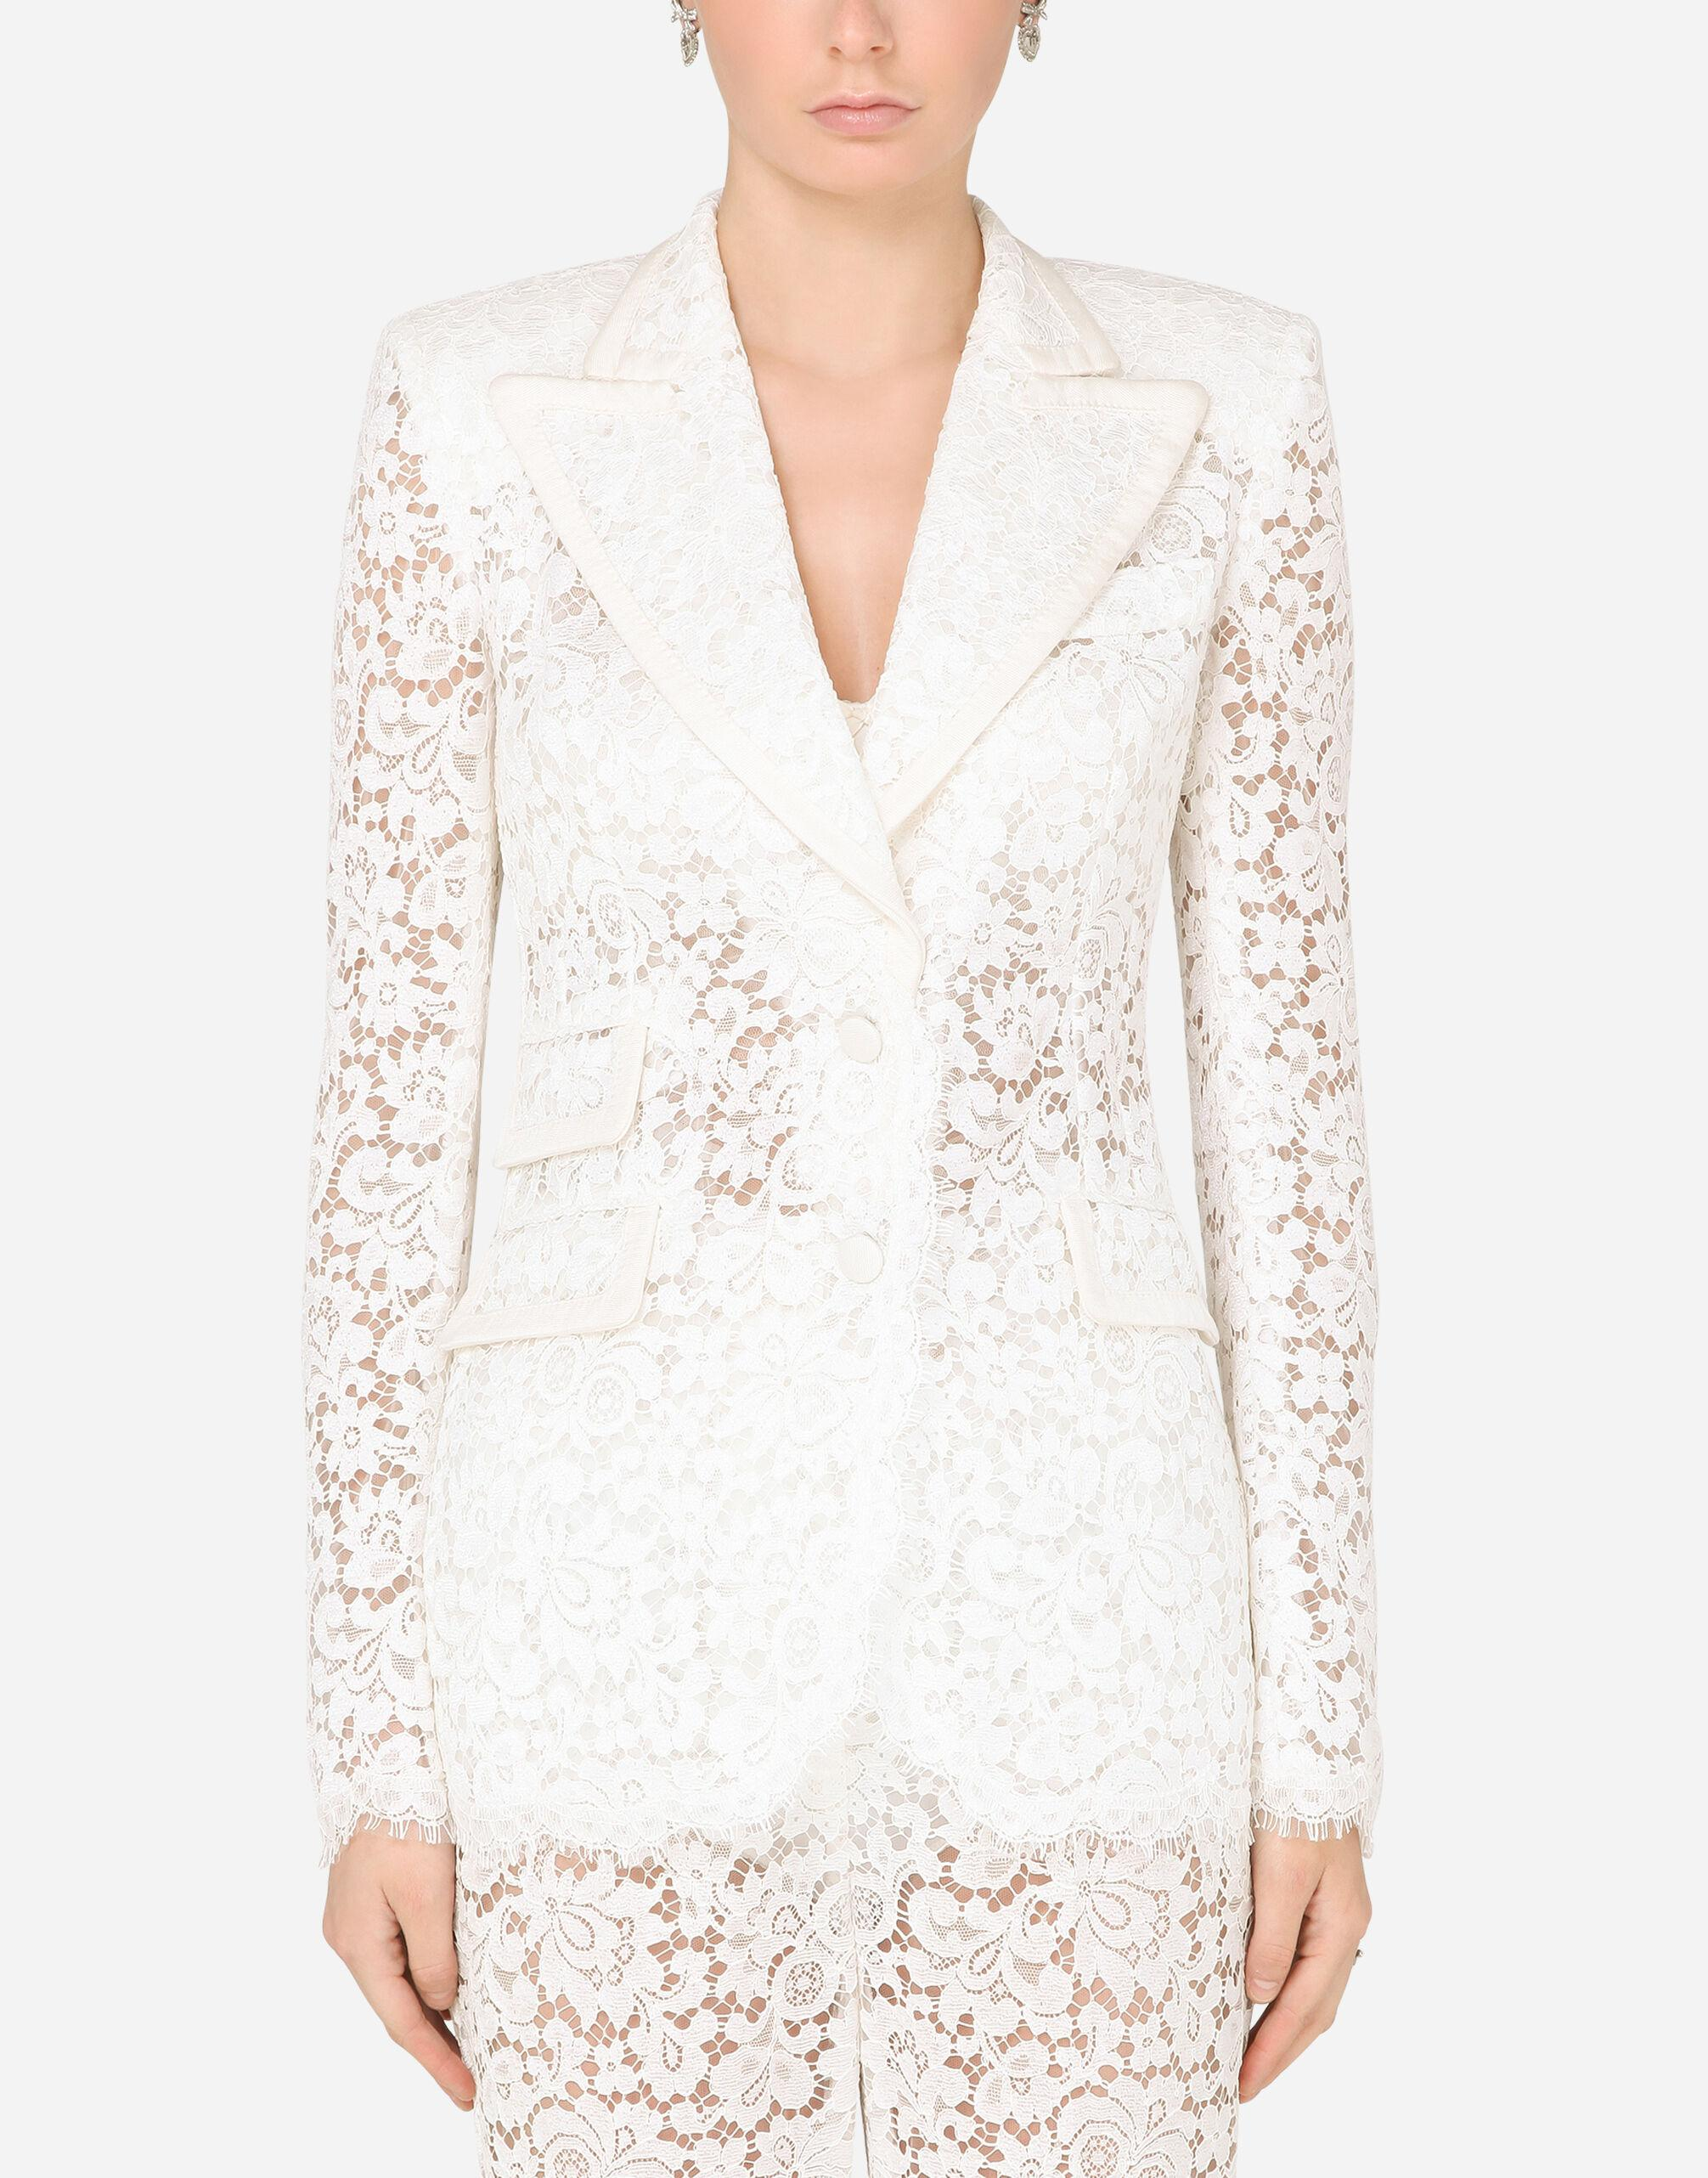 Lace jacket with edge detailing